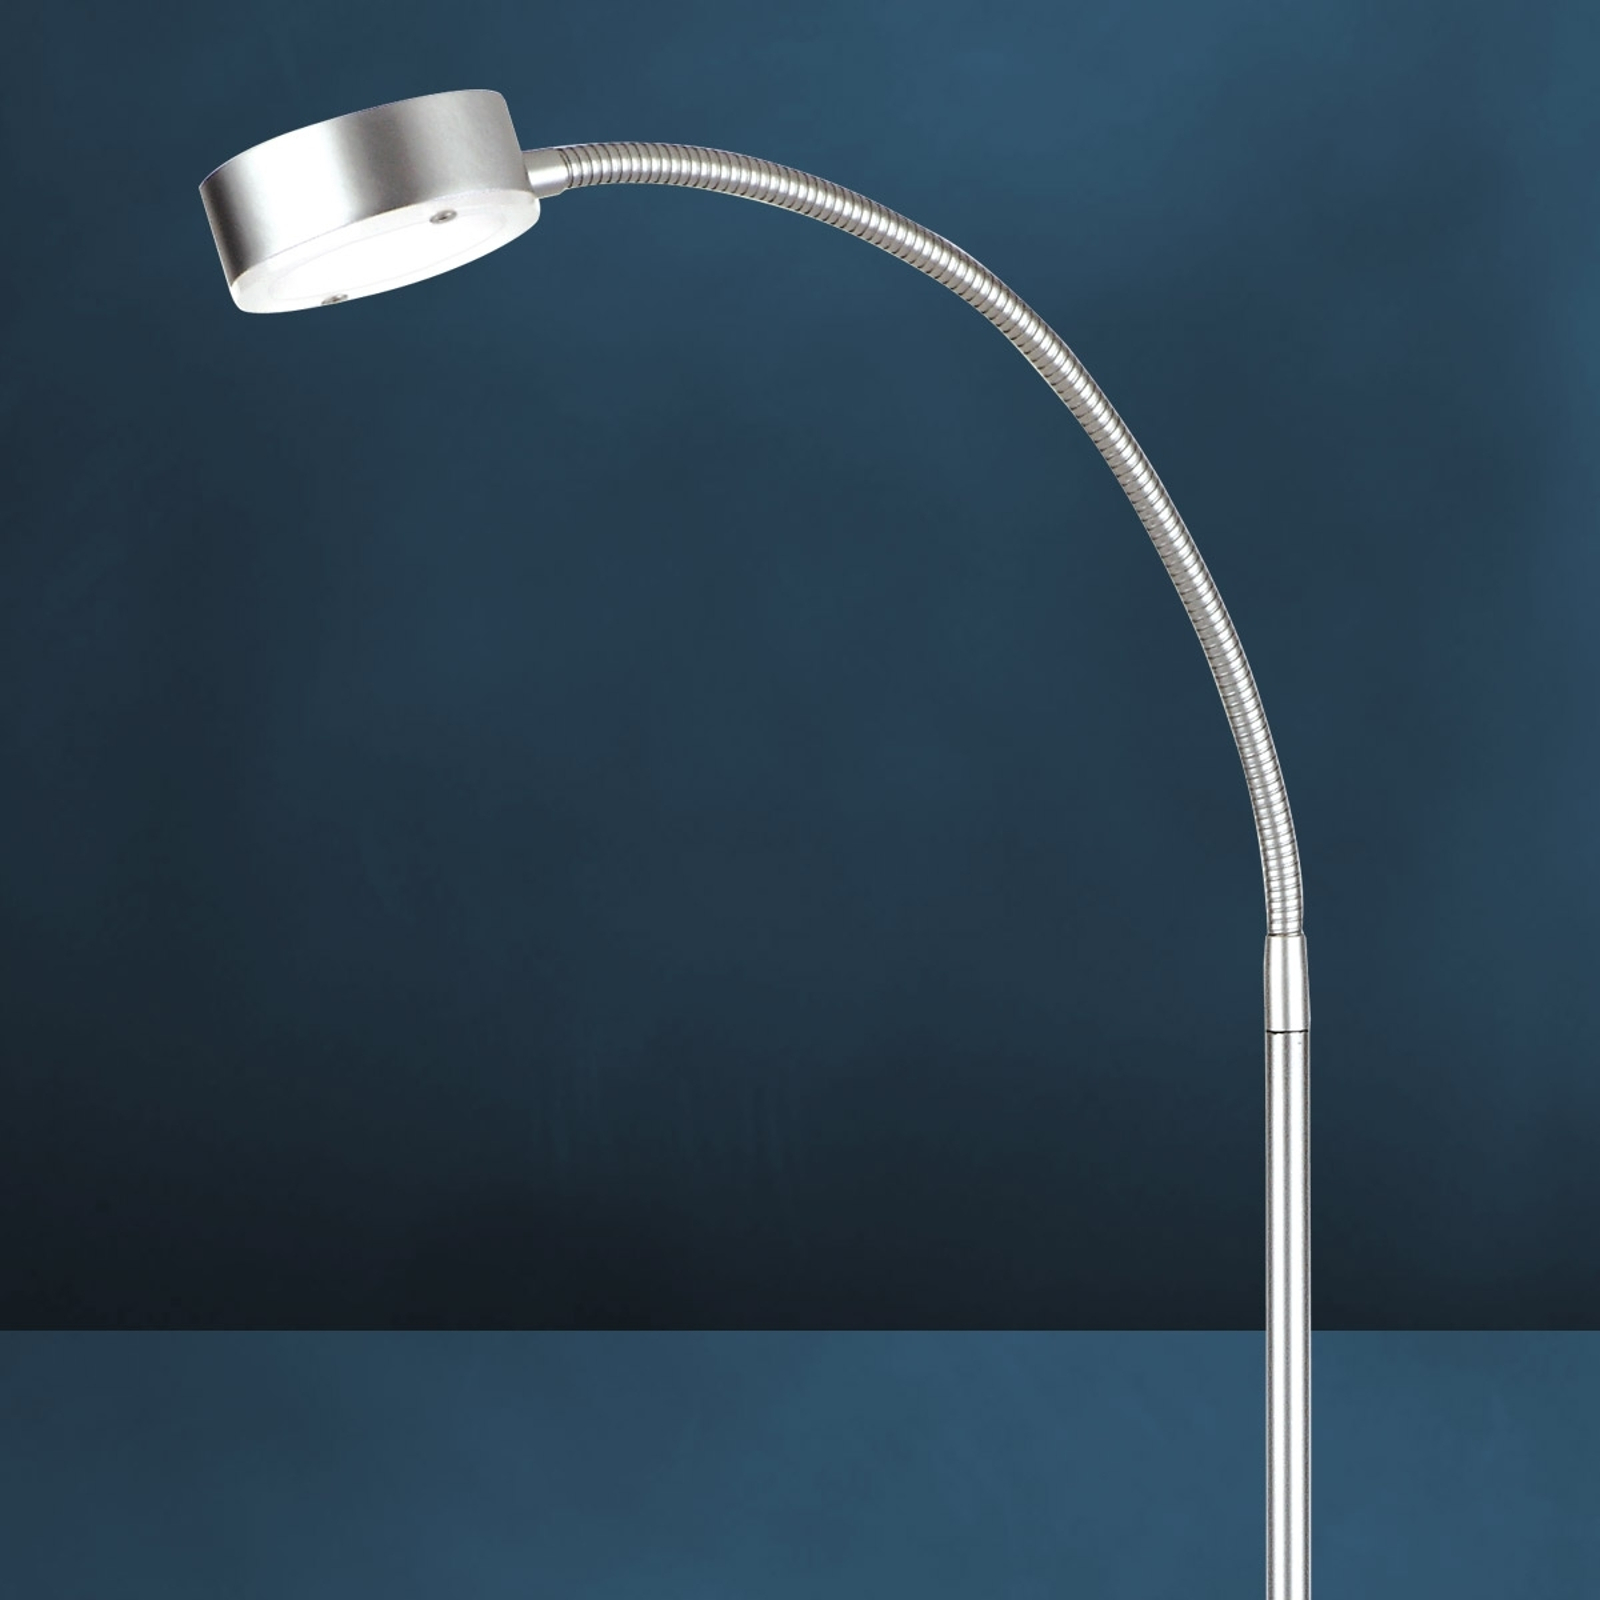 Lampadaire LED flexible SATURN, 1 lampe